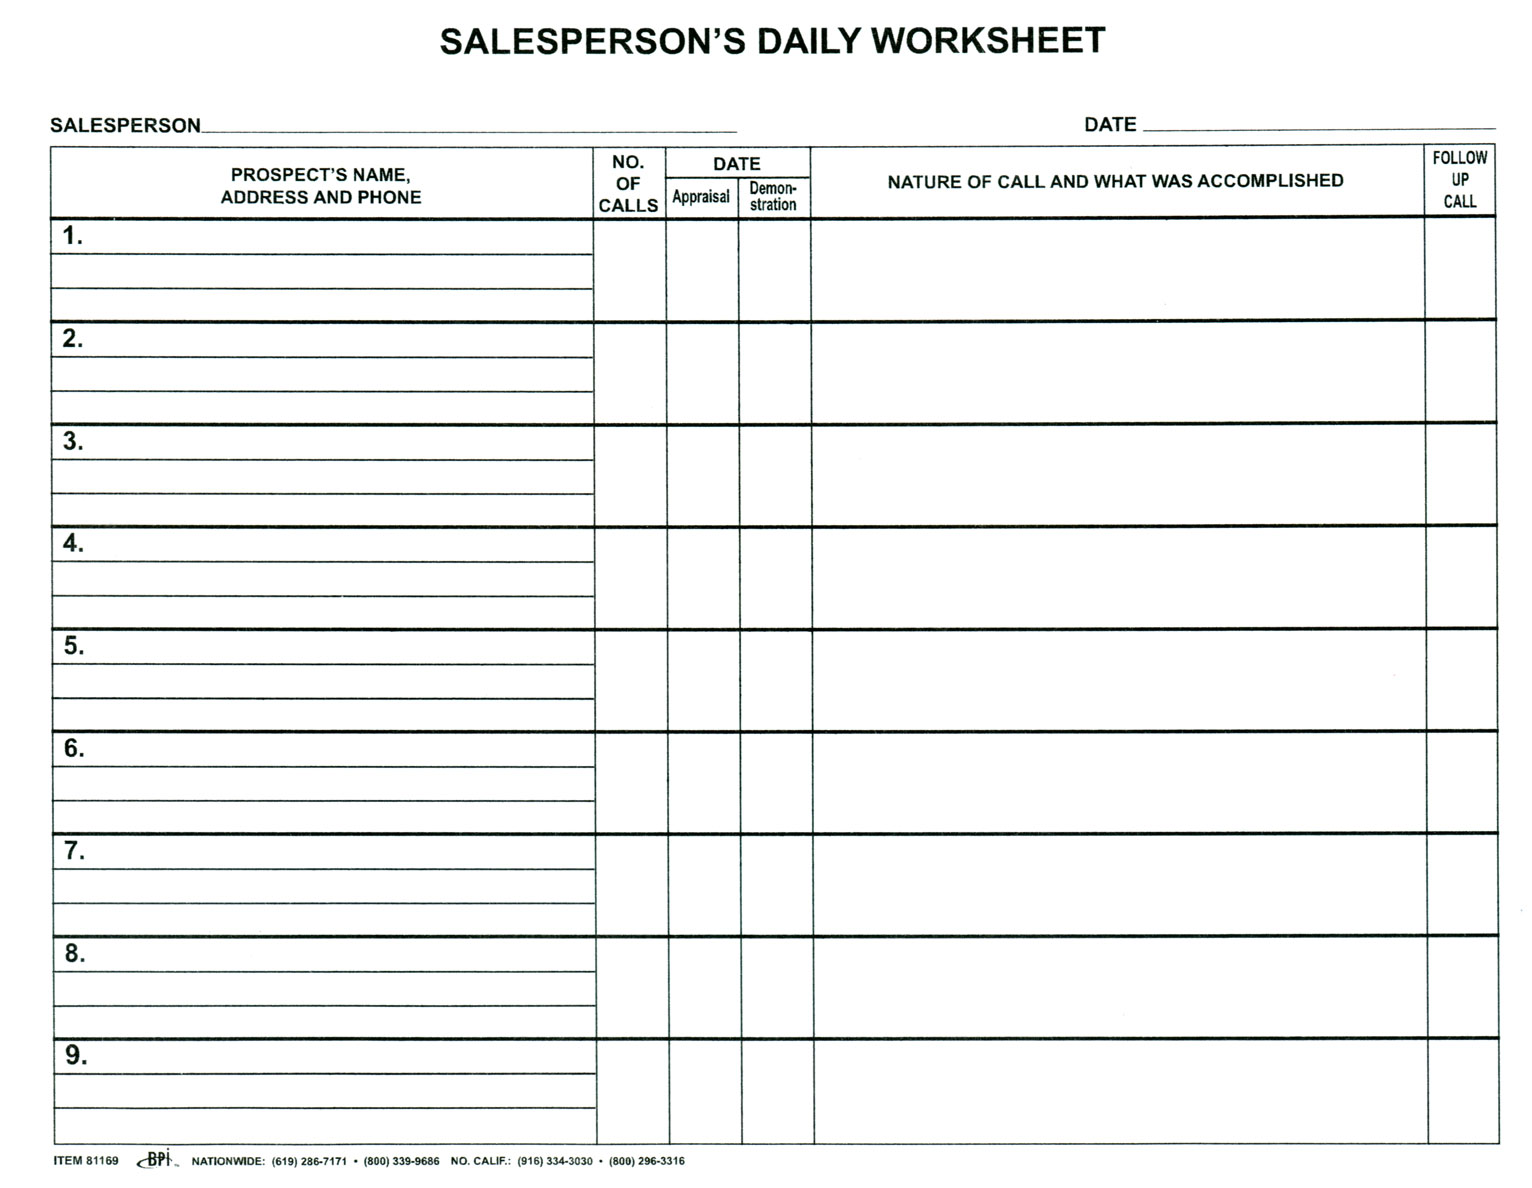 Salesperson Daily Worksheet